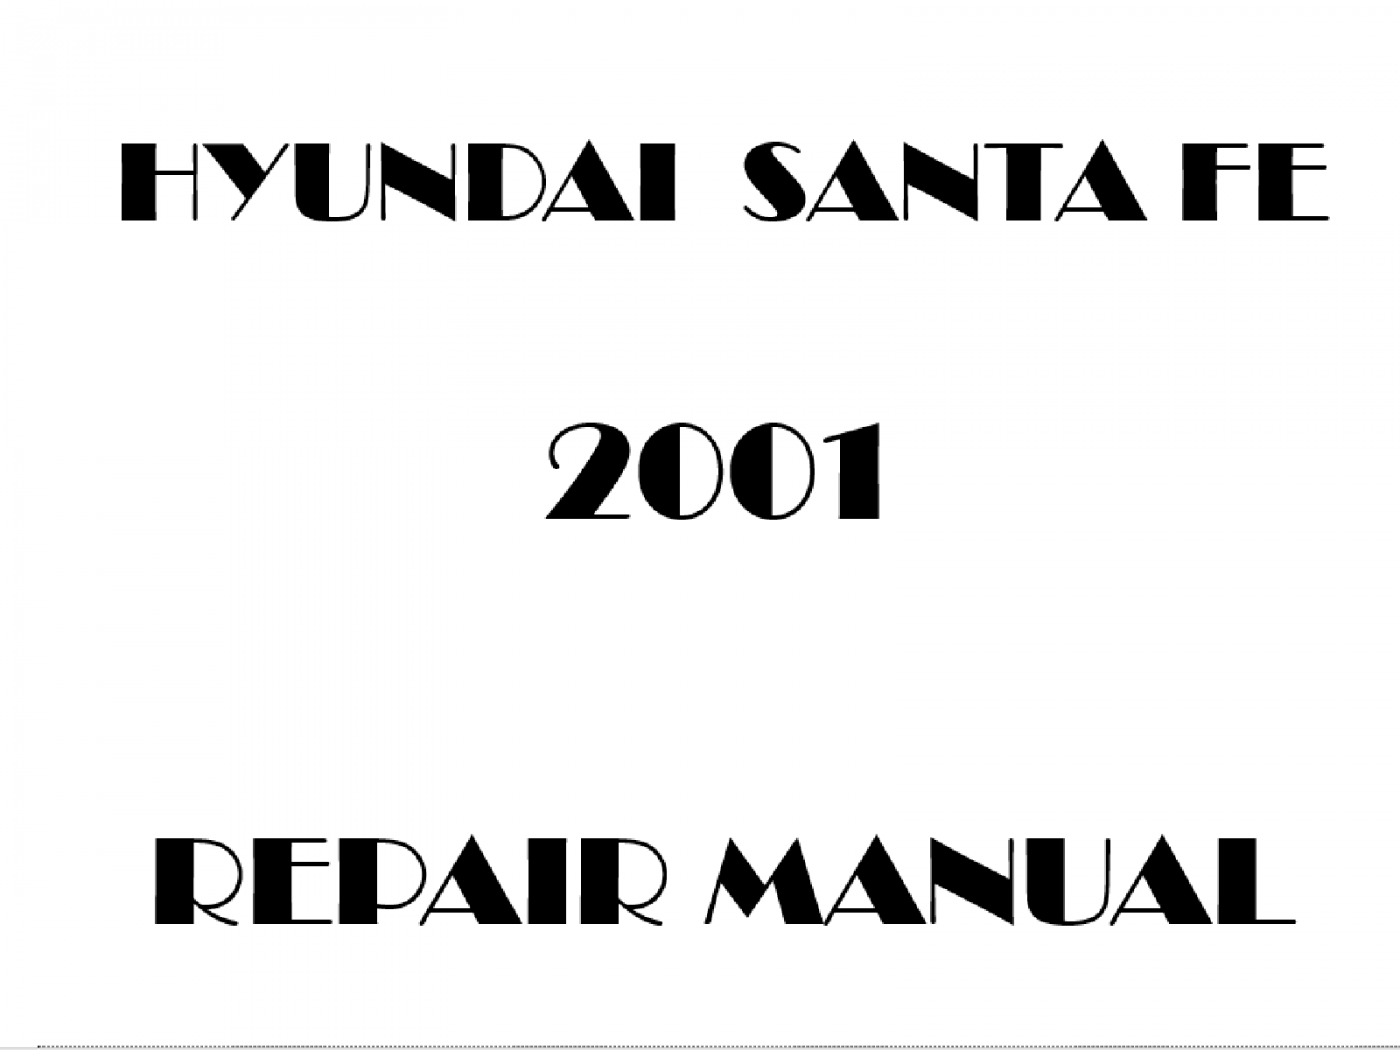 2001 Hyundai Santa Fe repair manual